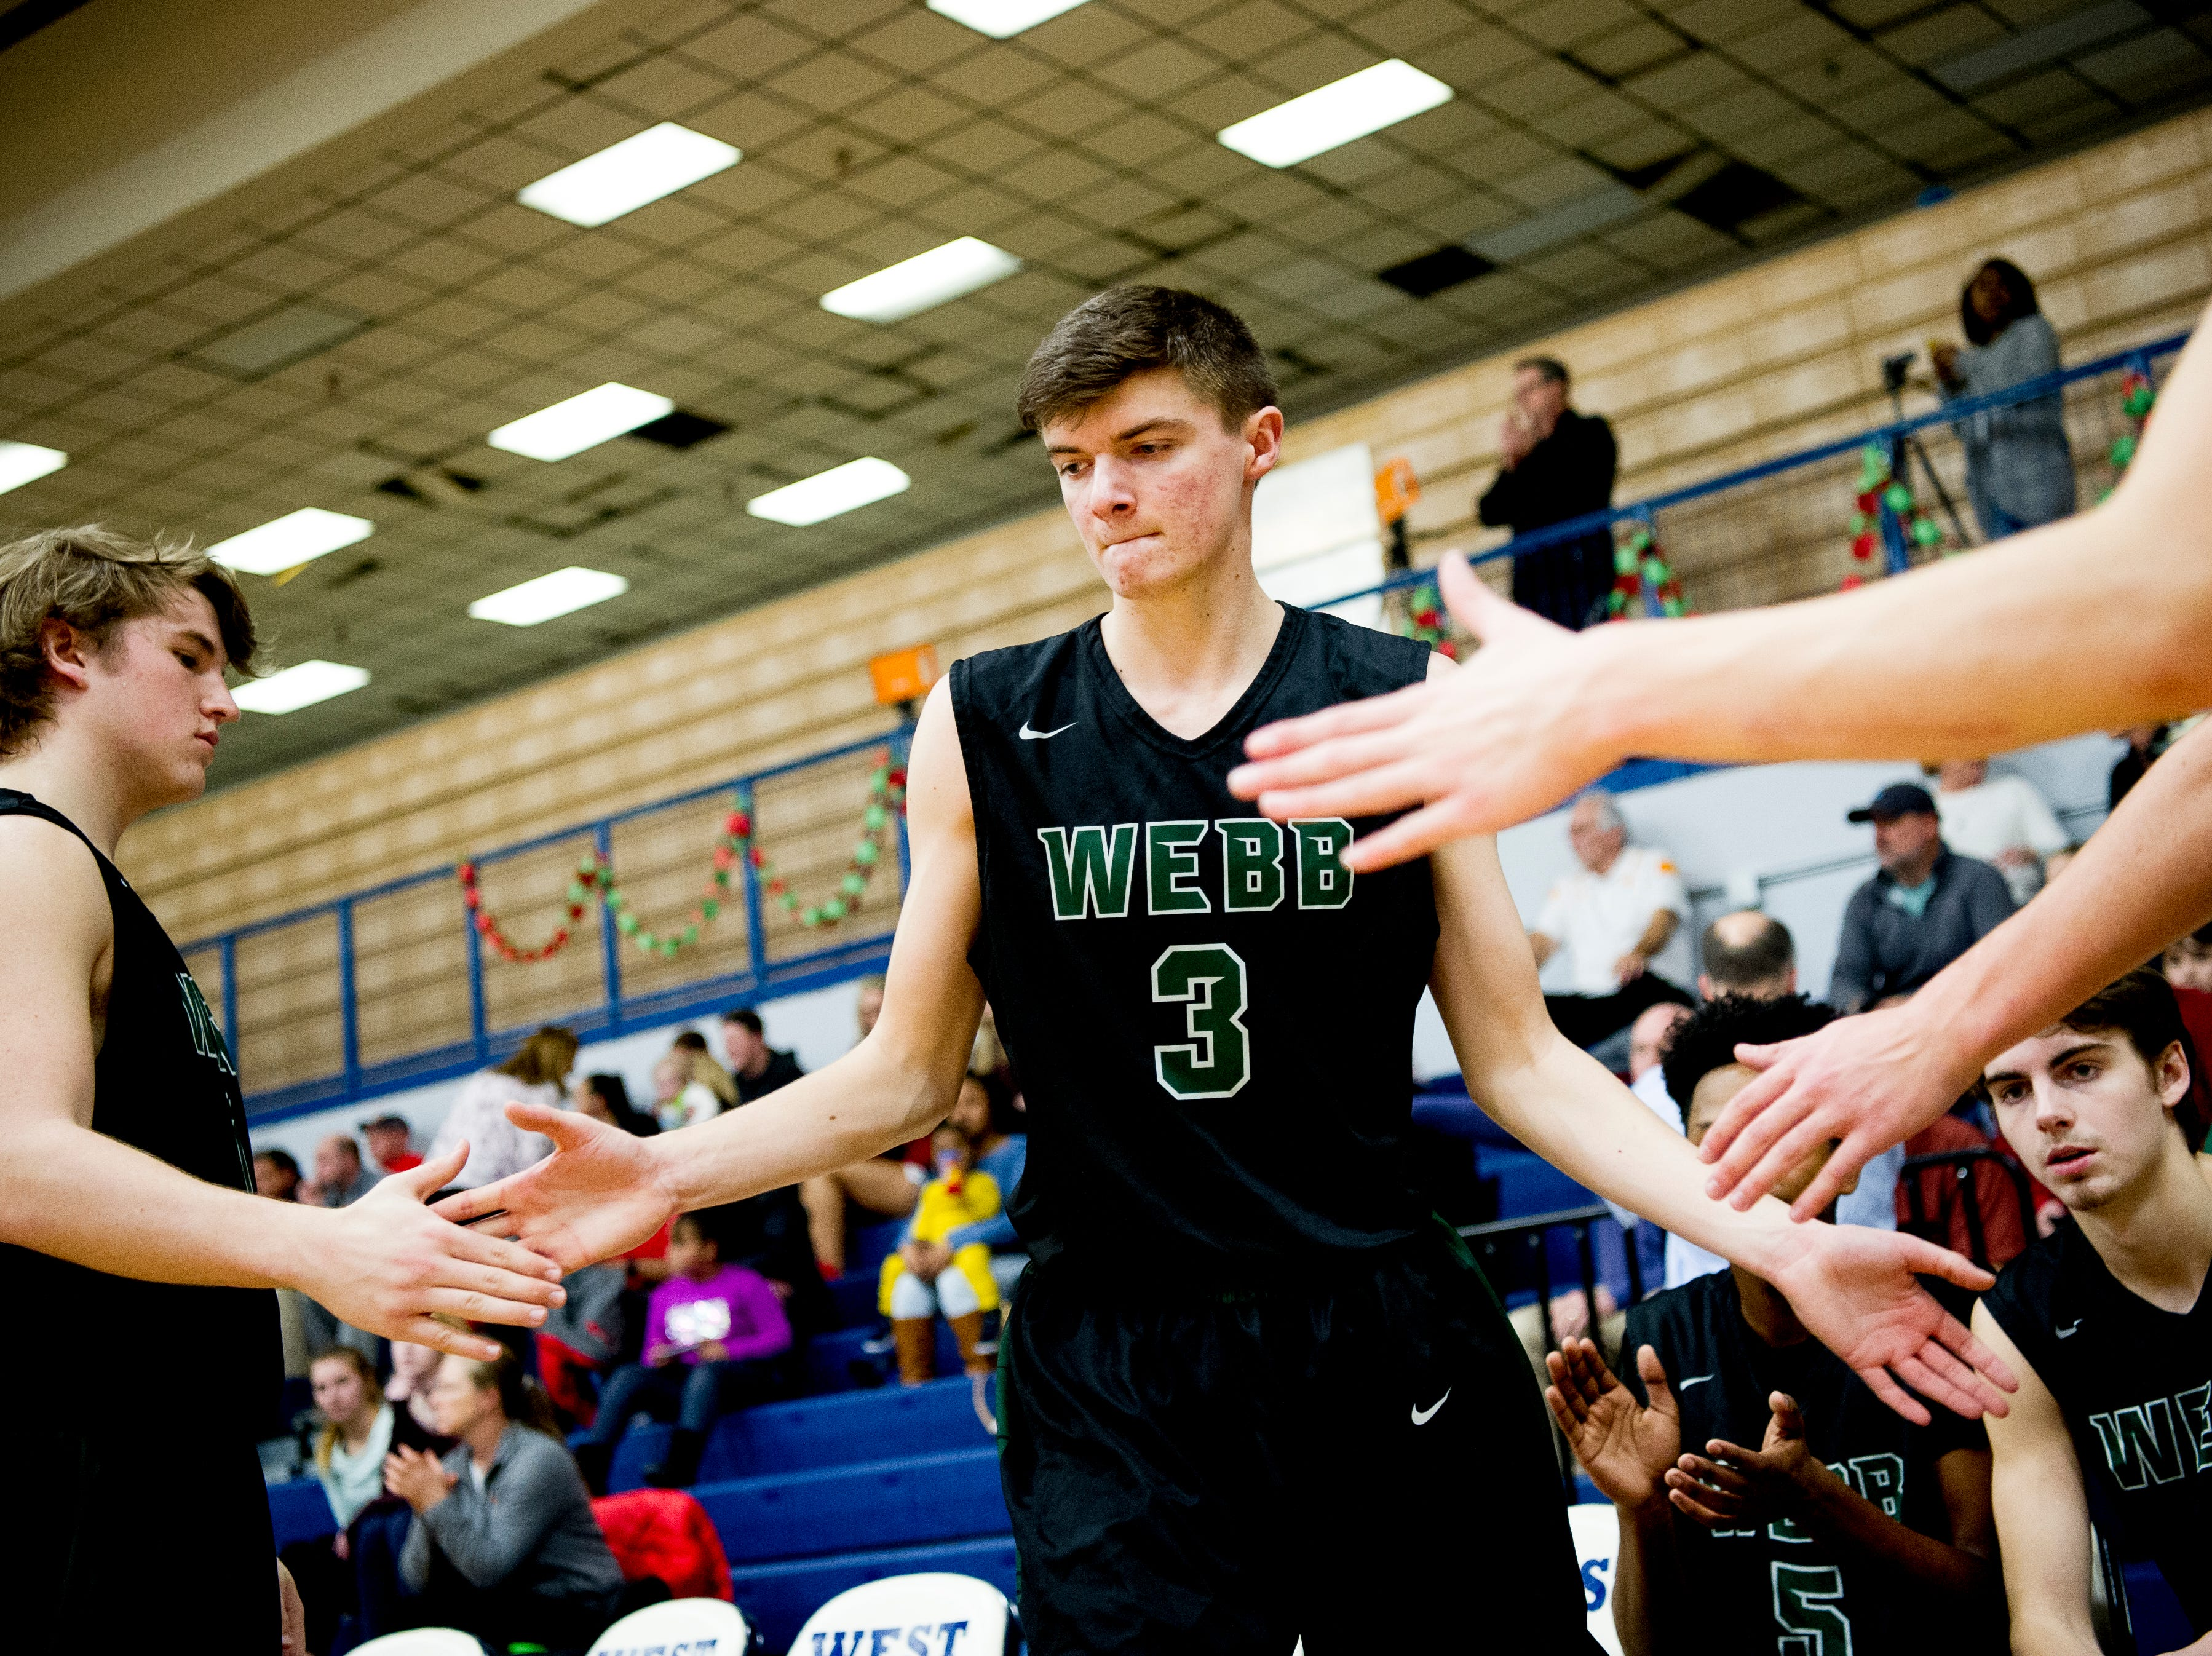 Webb's Luke Burnett (3) is introduced during a game between West and Webb at West High School in Knoxville, Tennessee on Friday, January 4, 2019.